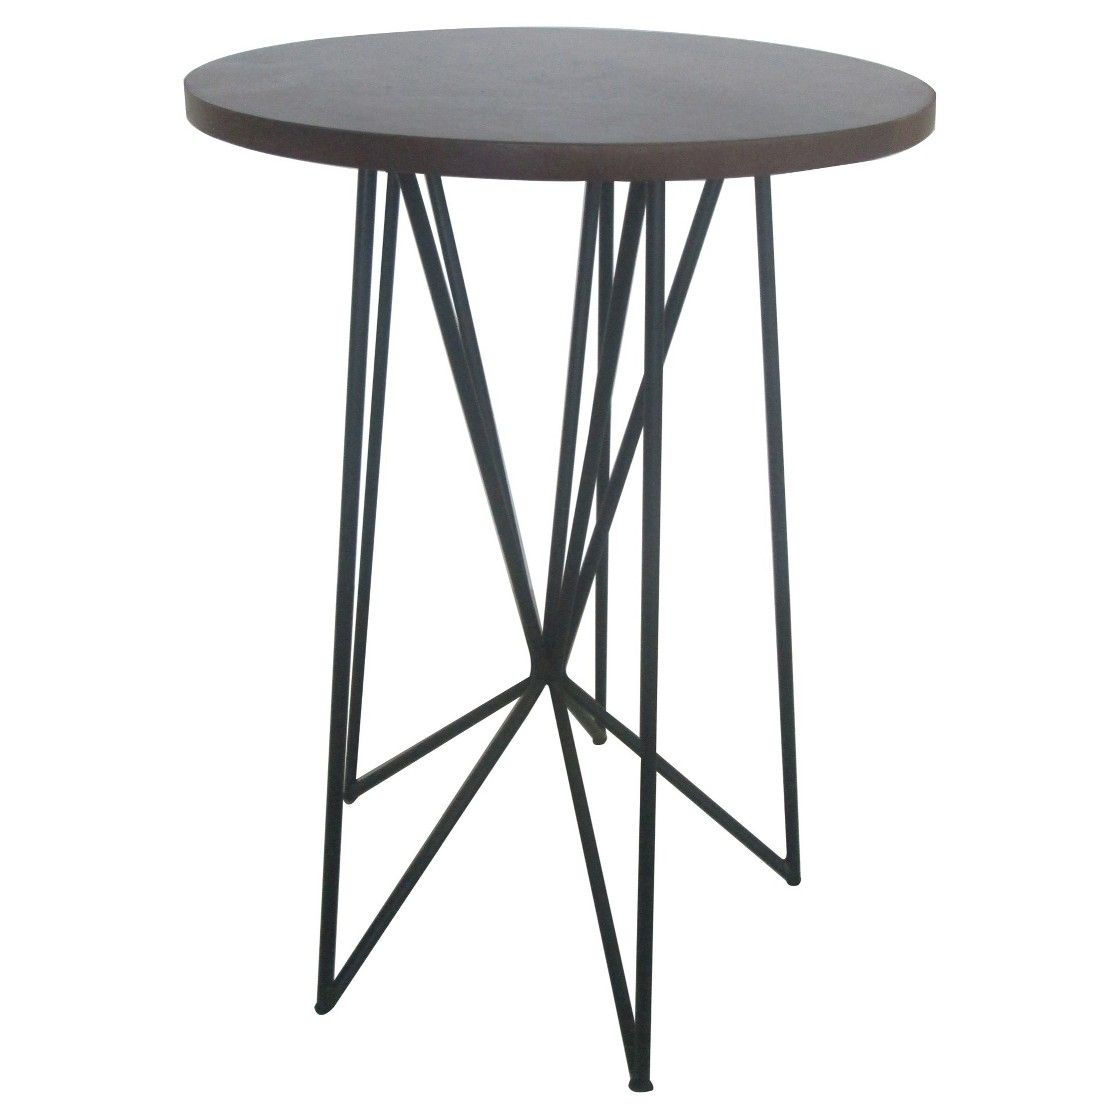 metal glass side pedestal target bedside ideas marble kmart table round black outdoor argos folding small gloss wood full size console with drawers tall corner sofa iron pottery